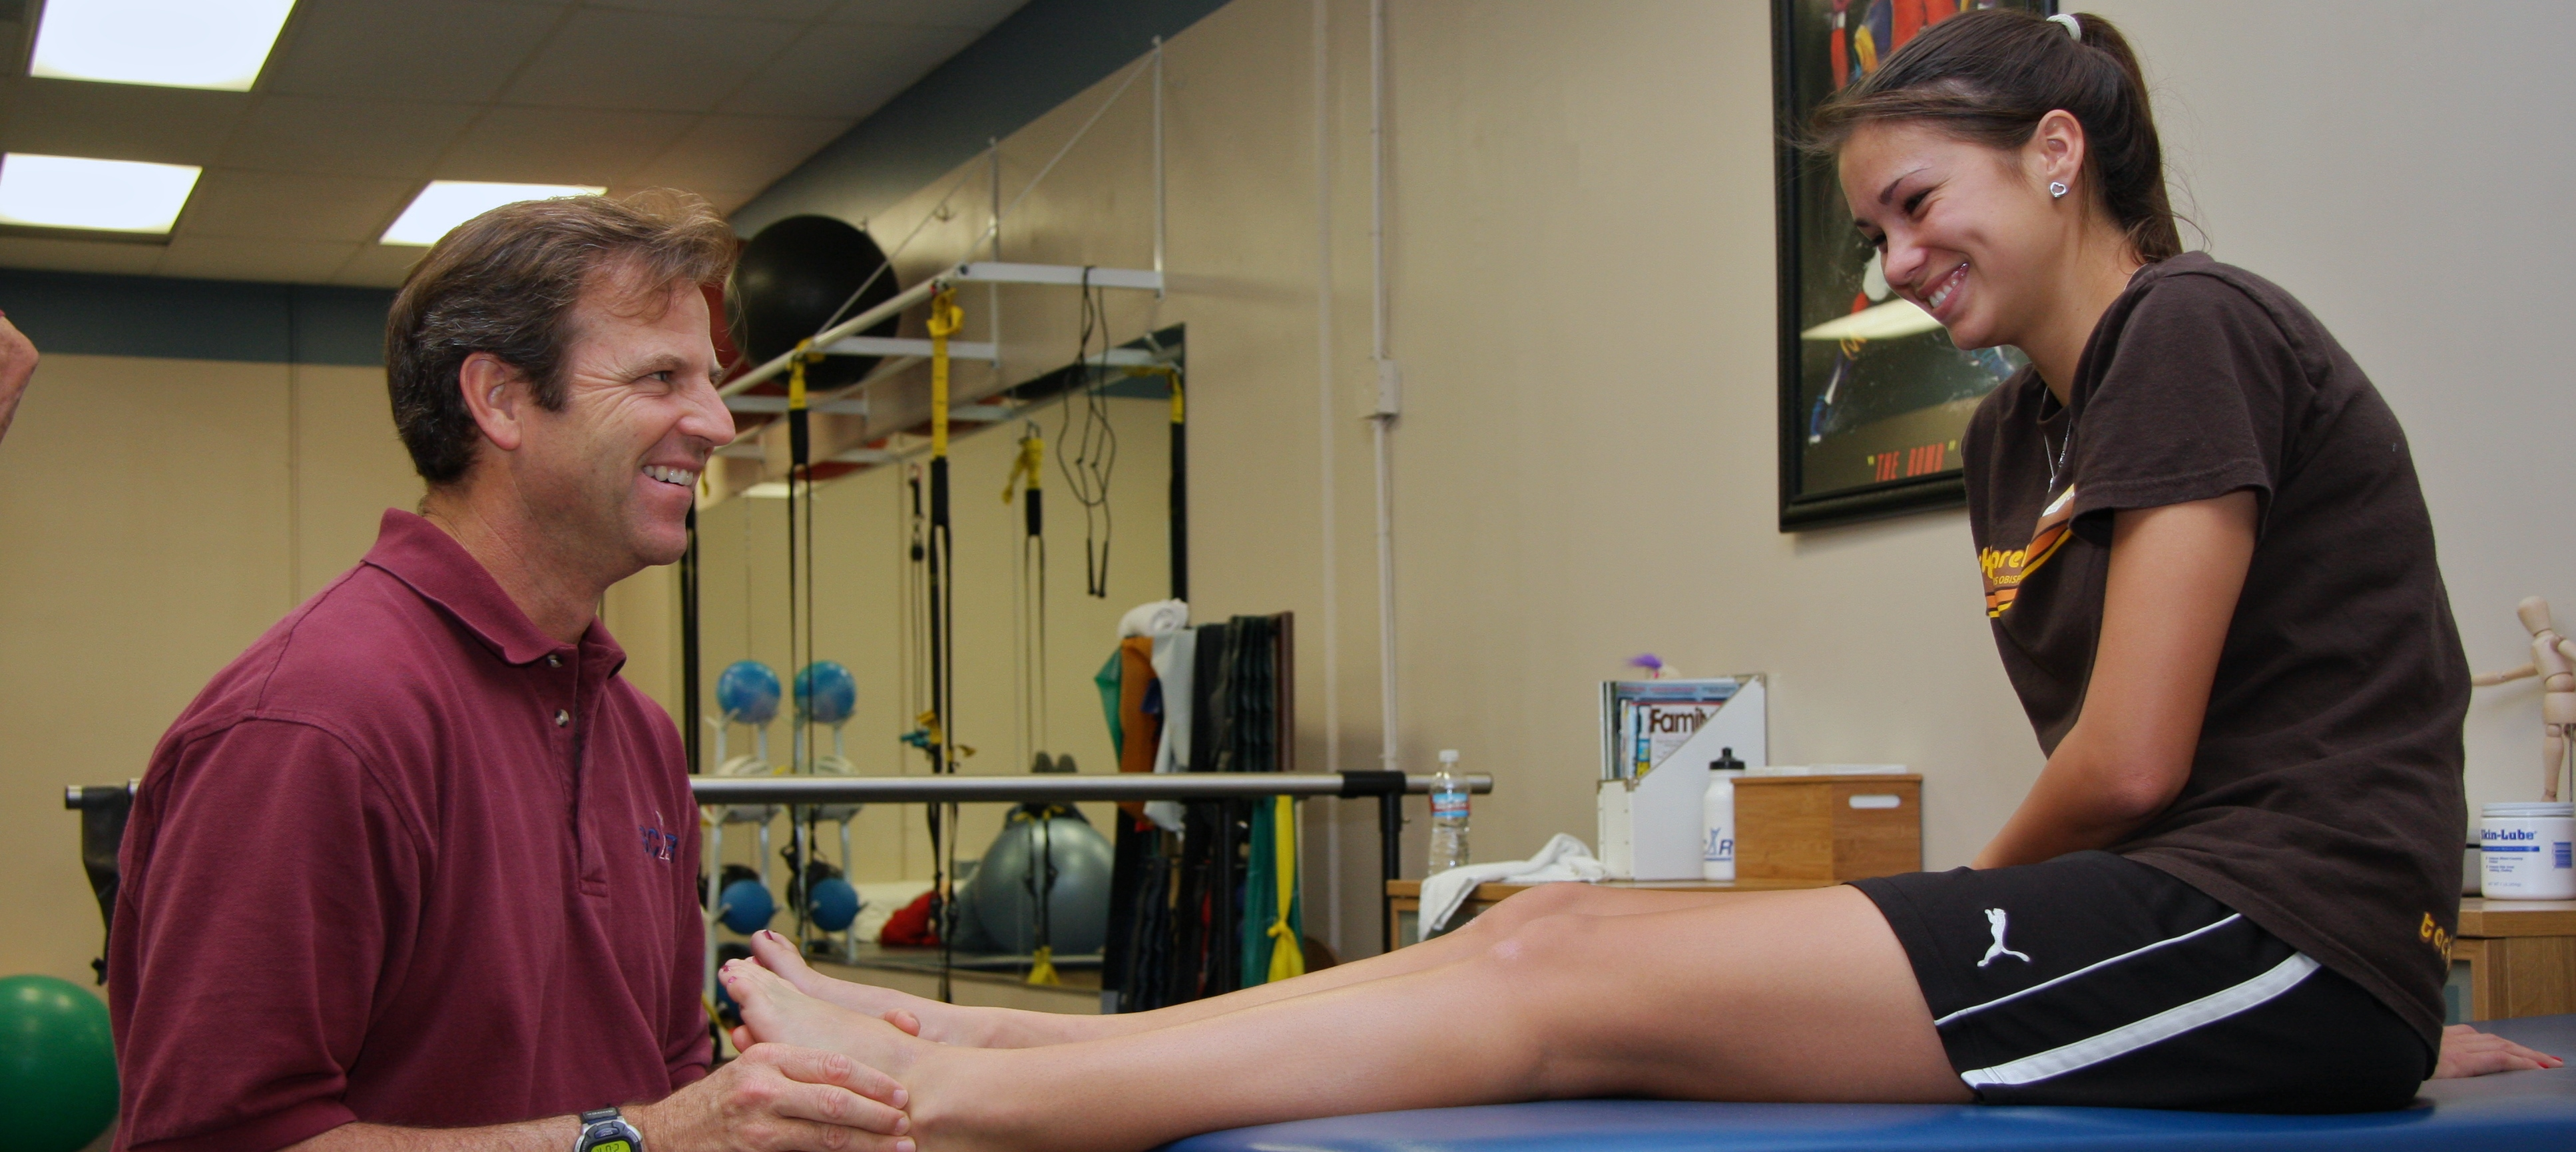 Sports Conditioning and Rehabilitation (SCAR) image 4